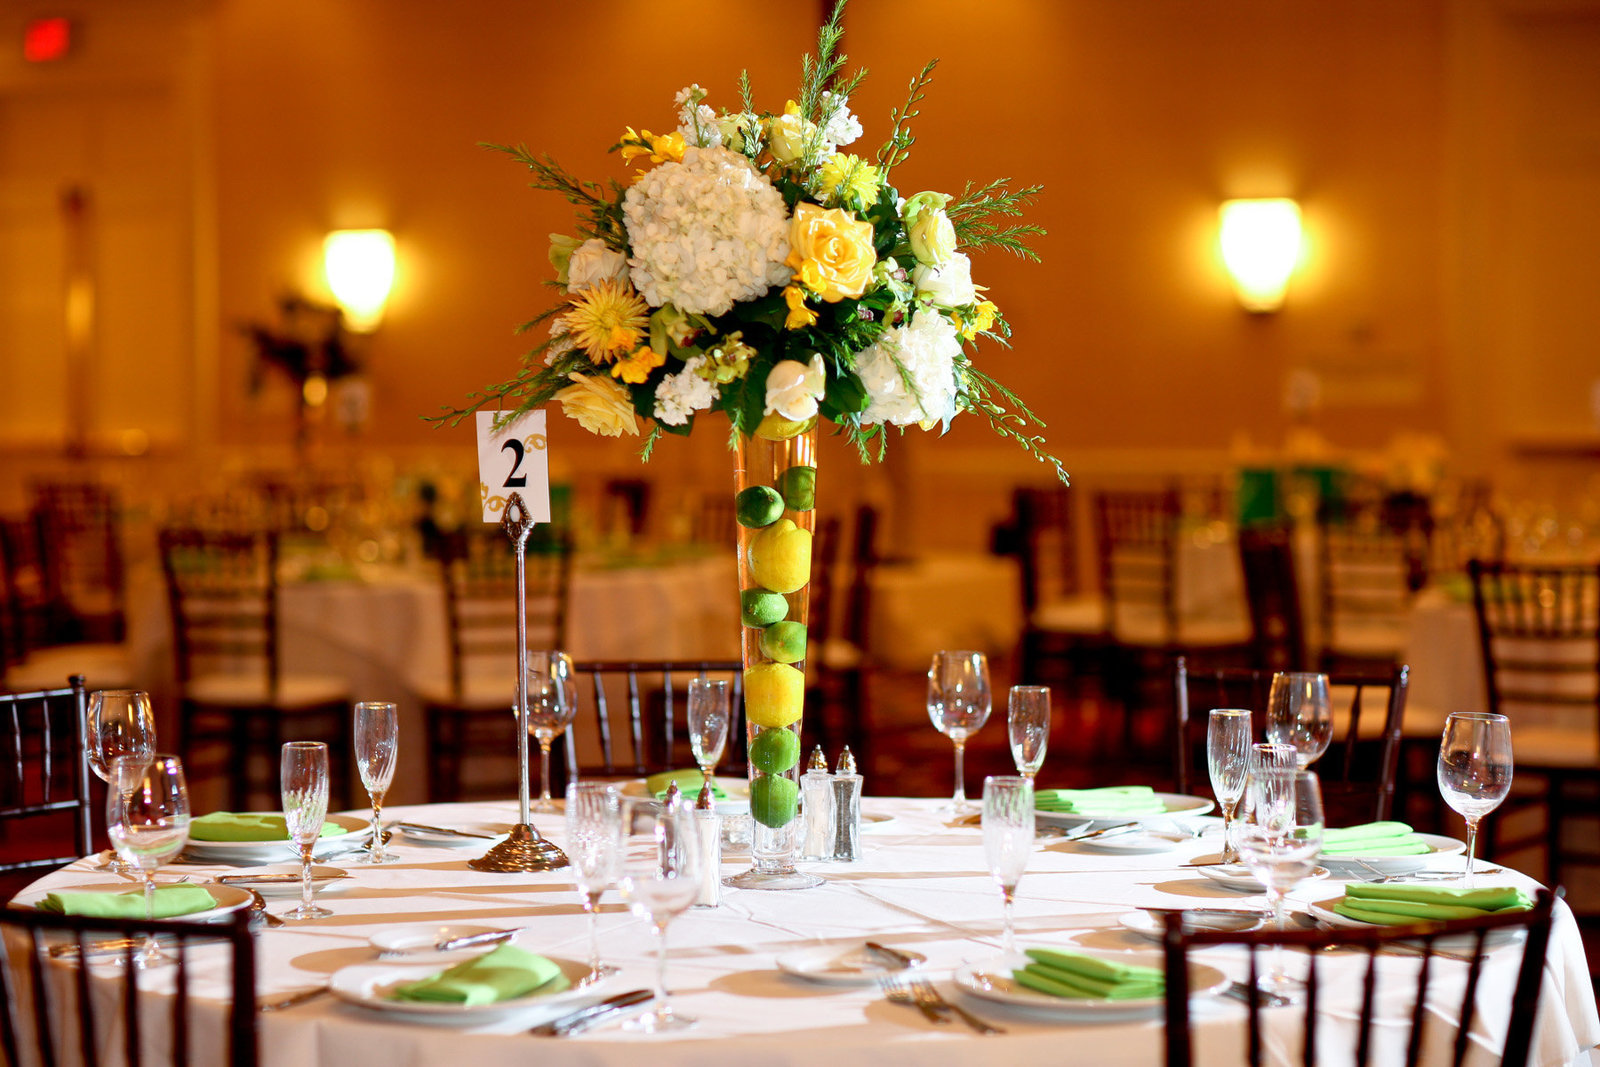 Lemons and Limes Wedding Centerpiece